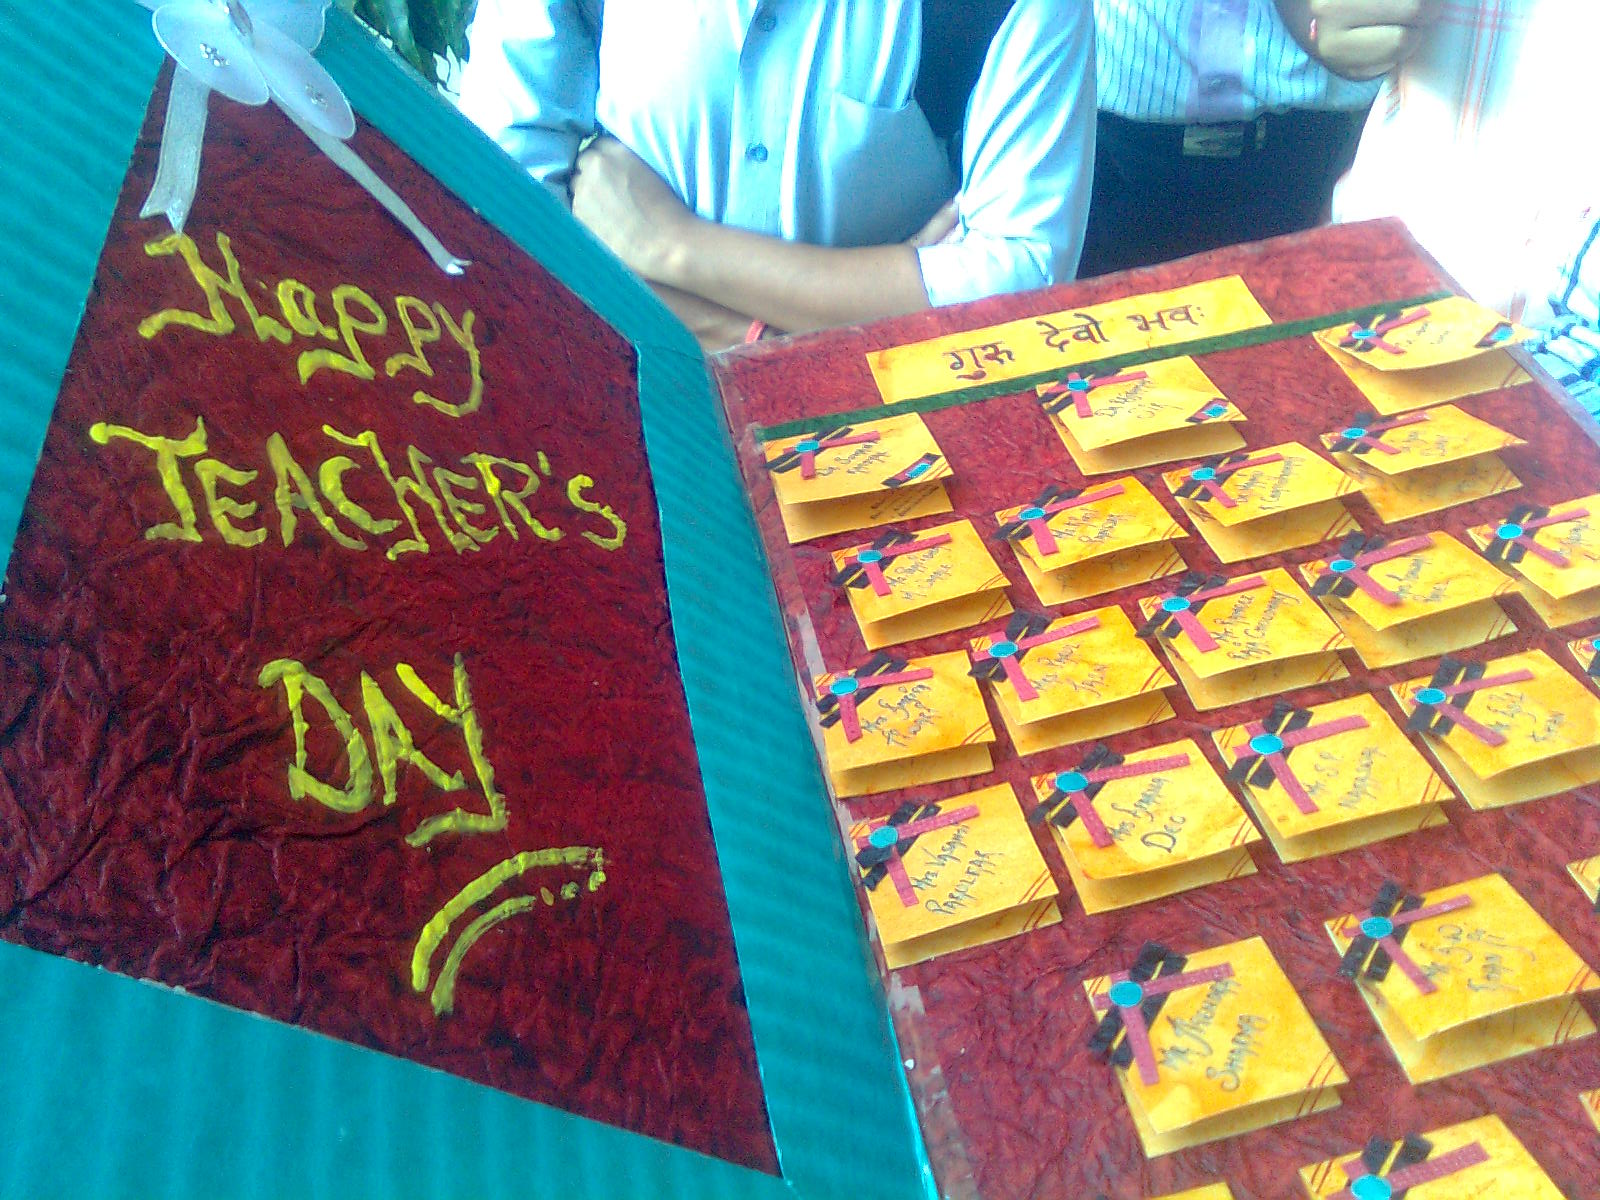 indore diary 3 htd but there was two activities that i superlike teachers day invitation card and preparation of play at rinkeshs room altavistaventures Images